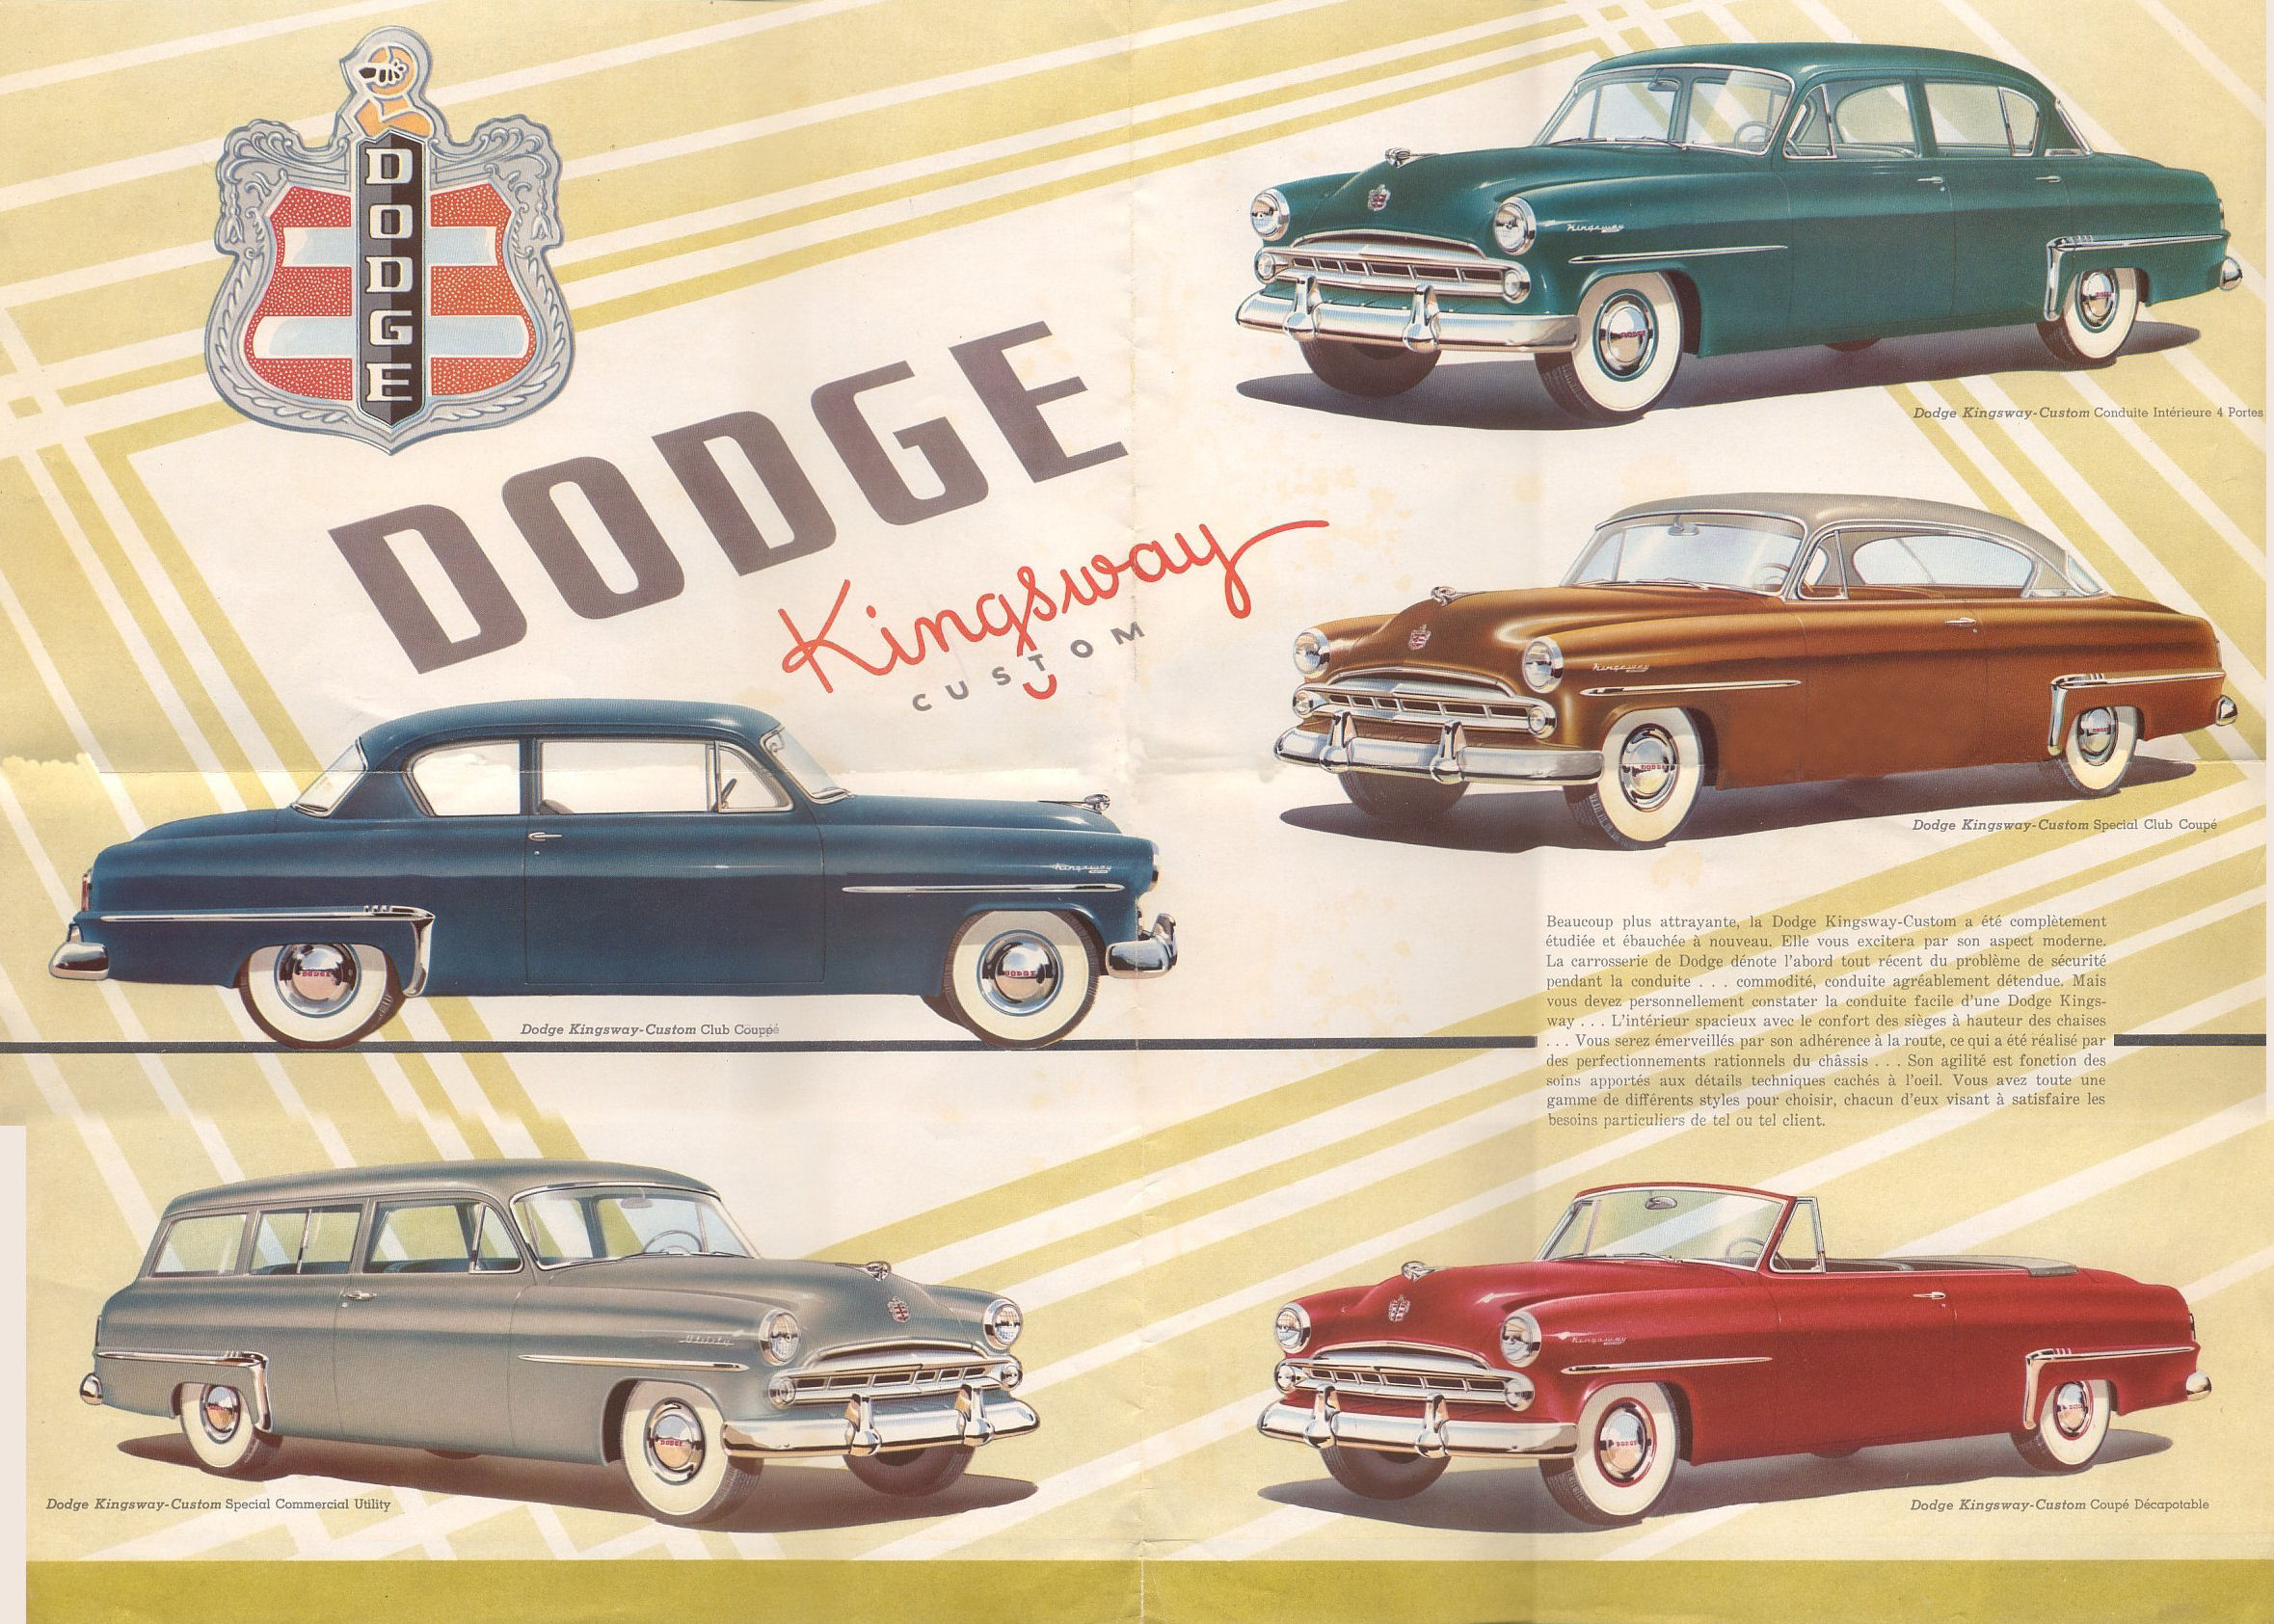 Dodge kingsway photo - 3